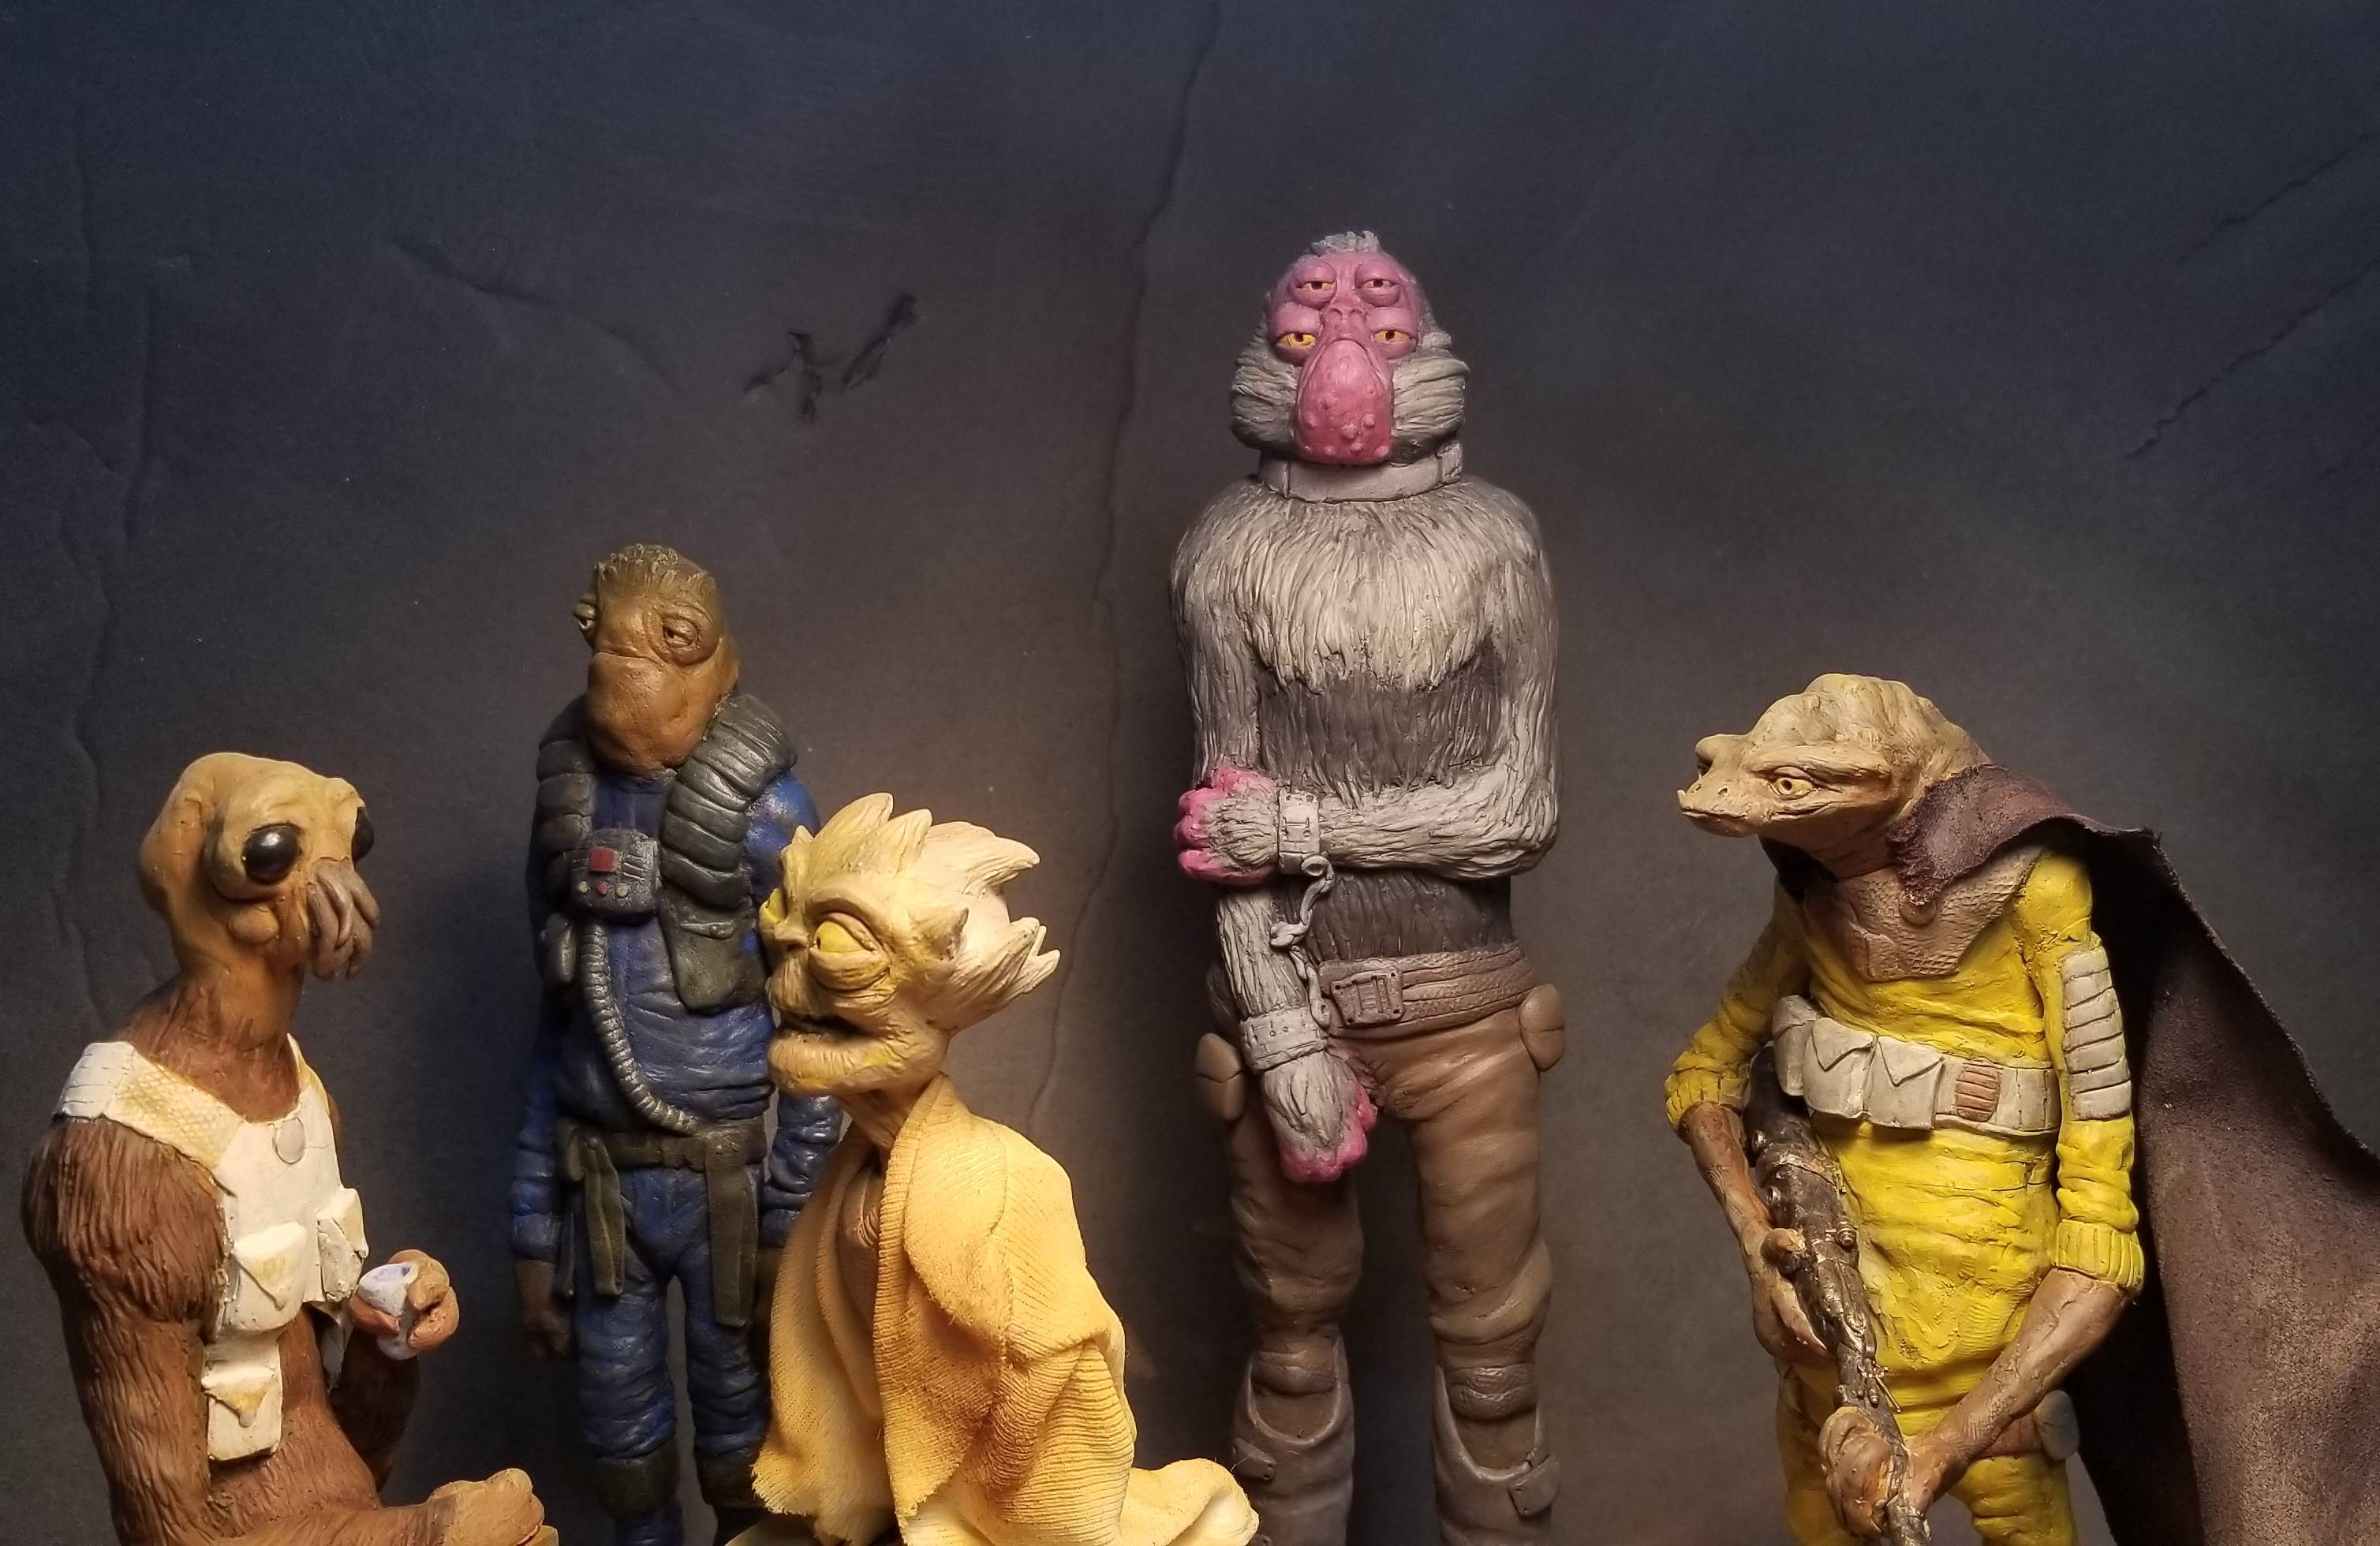 Slowly putting together my own little Cantina of sculptures I\'ve made